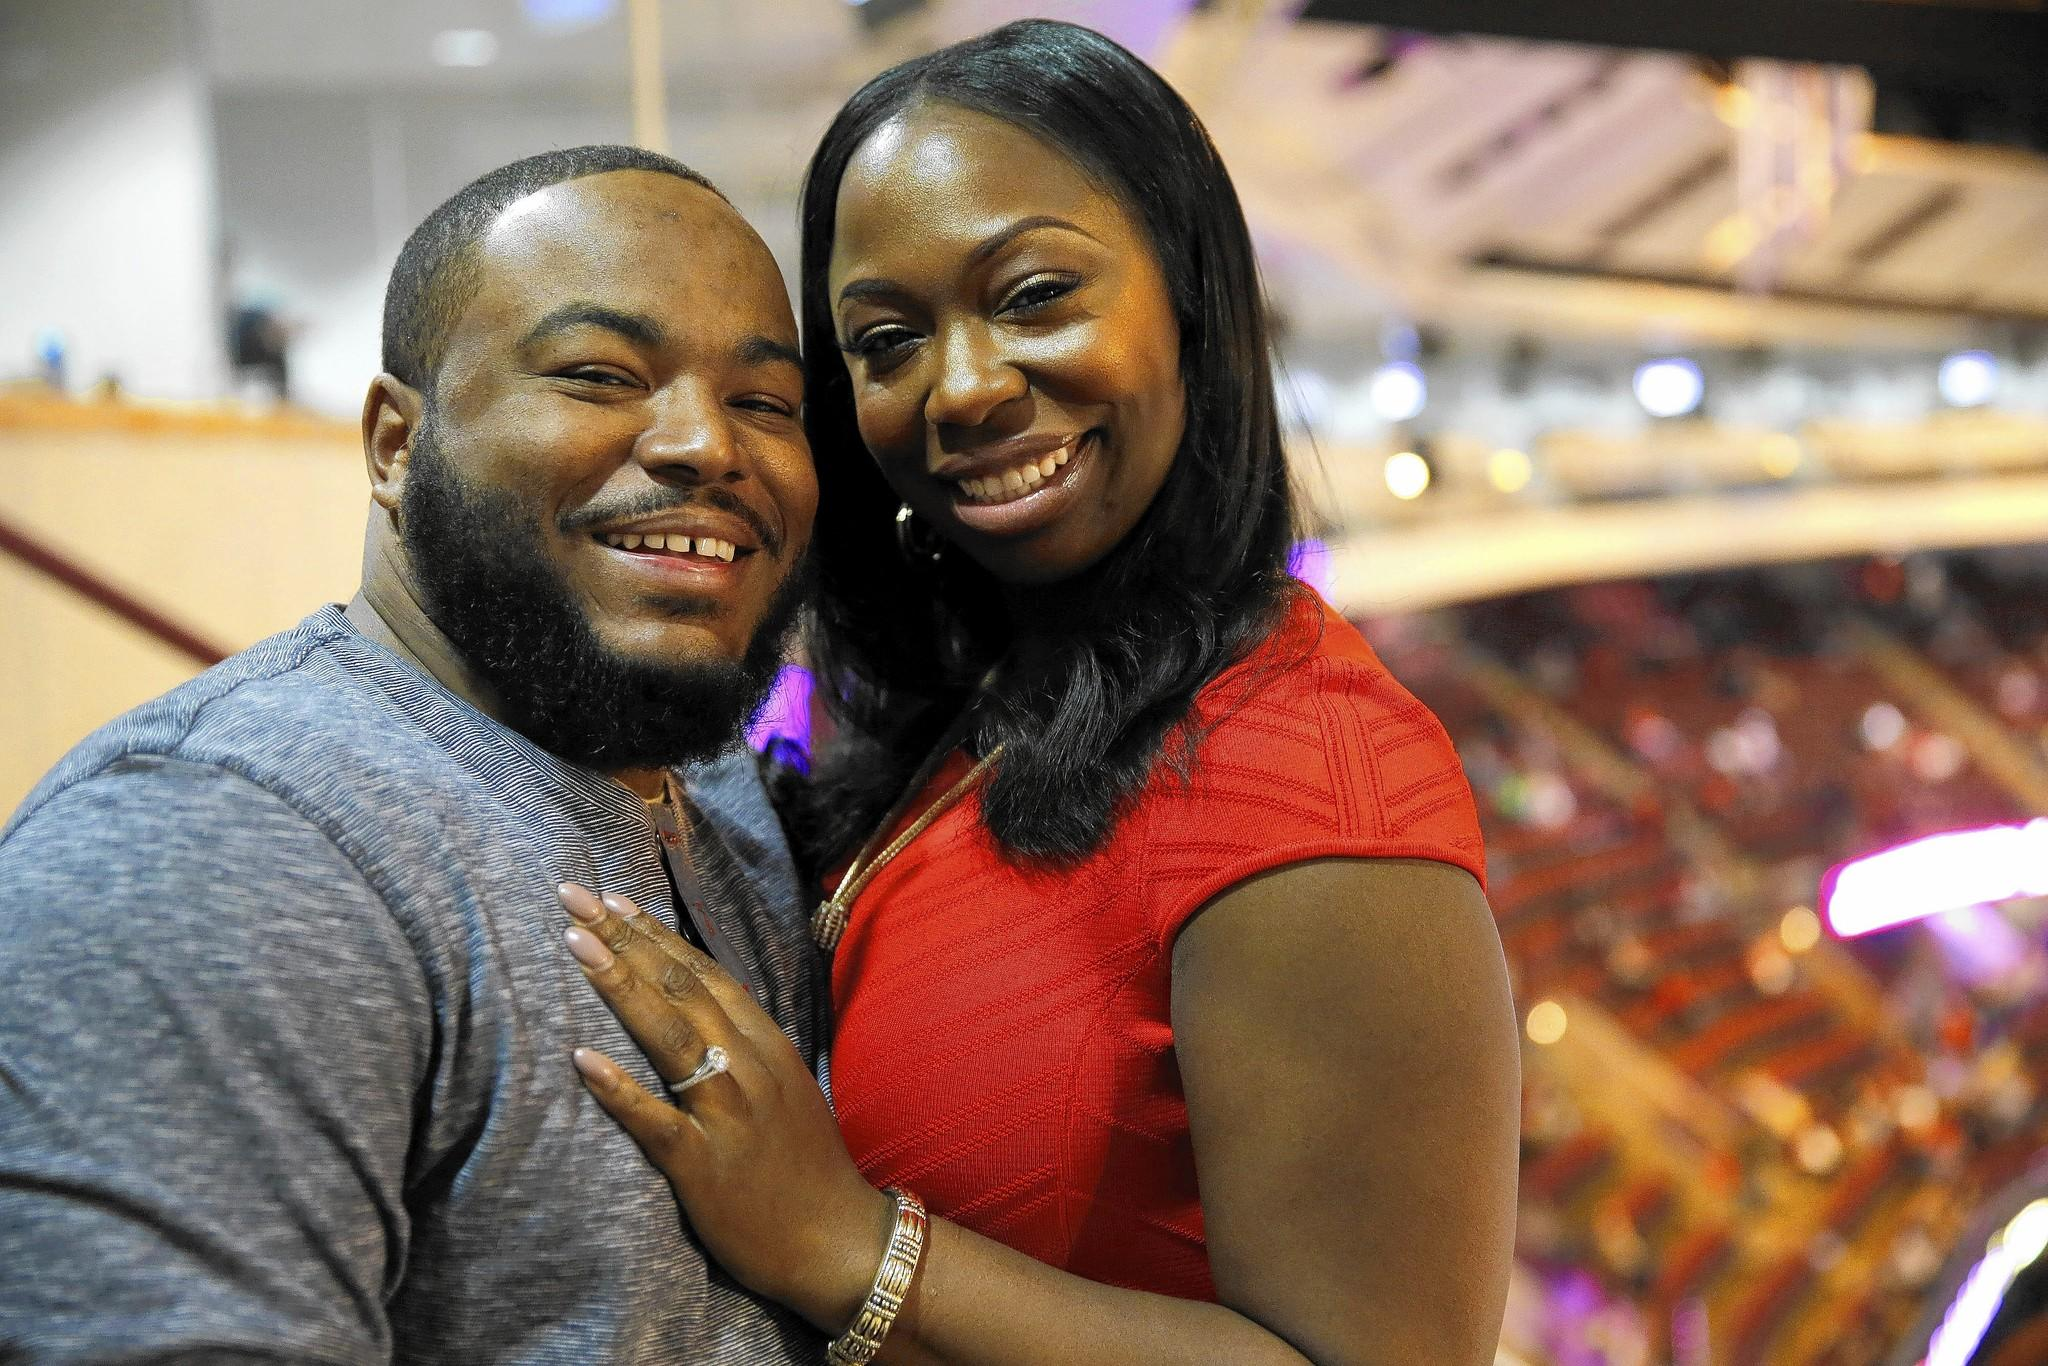 Wesley Coleman and Tracie A. Todd met in a box at the United Center during a Chicago Bulls game and now in a long-distance relationship.